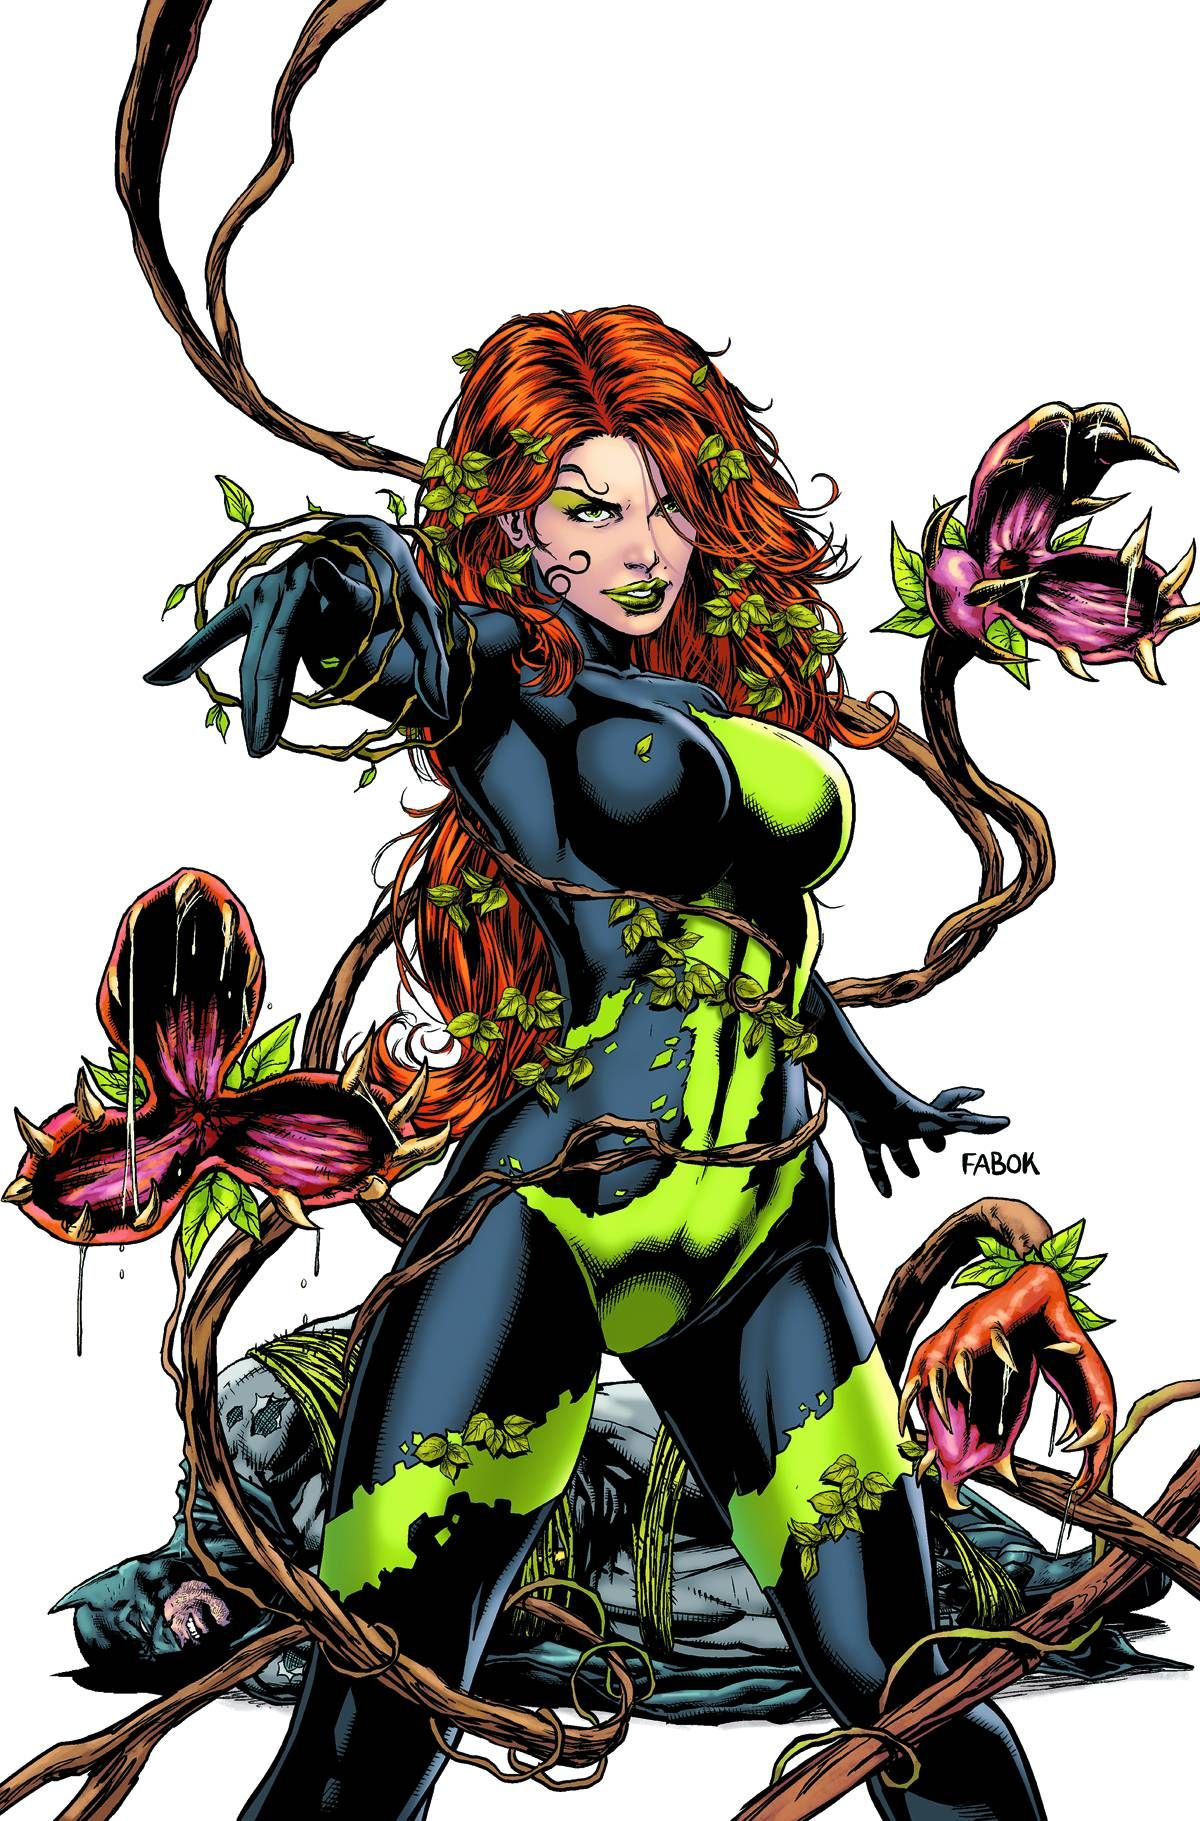 Depiction of Poison Ivy showing off her control over plant life. Poison Ivy is an important bisexual character in the DC universe.